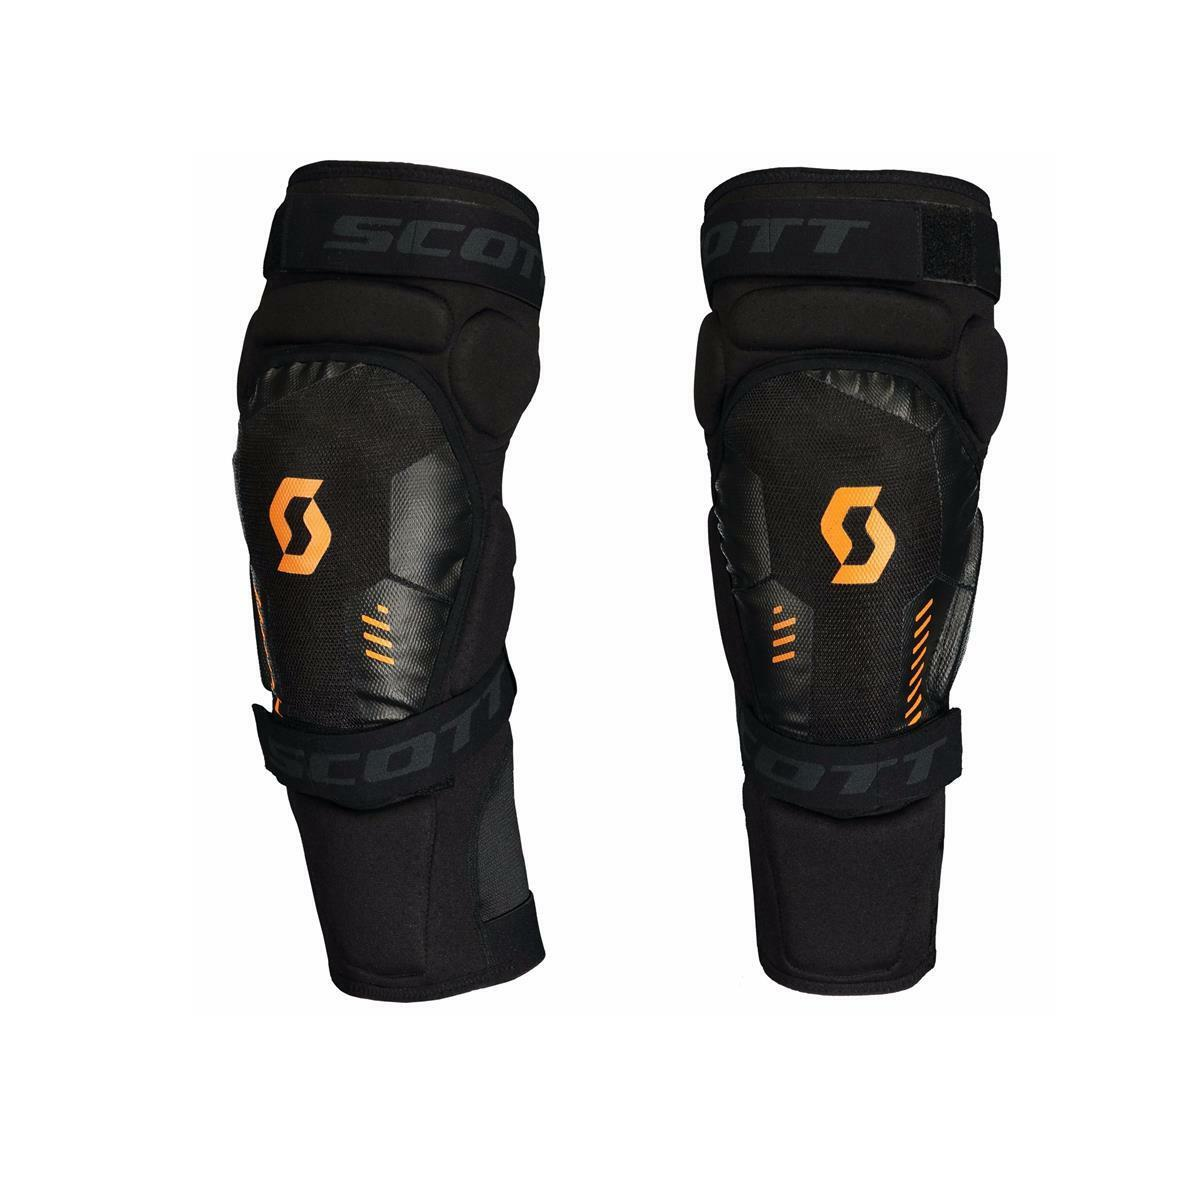 Kneepads guards softcon 2 black SCOTT predections